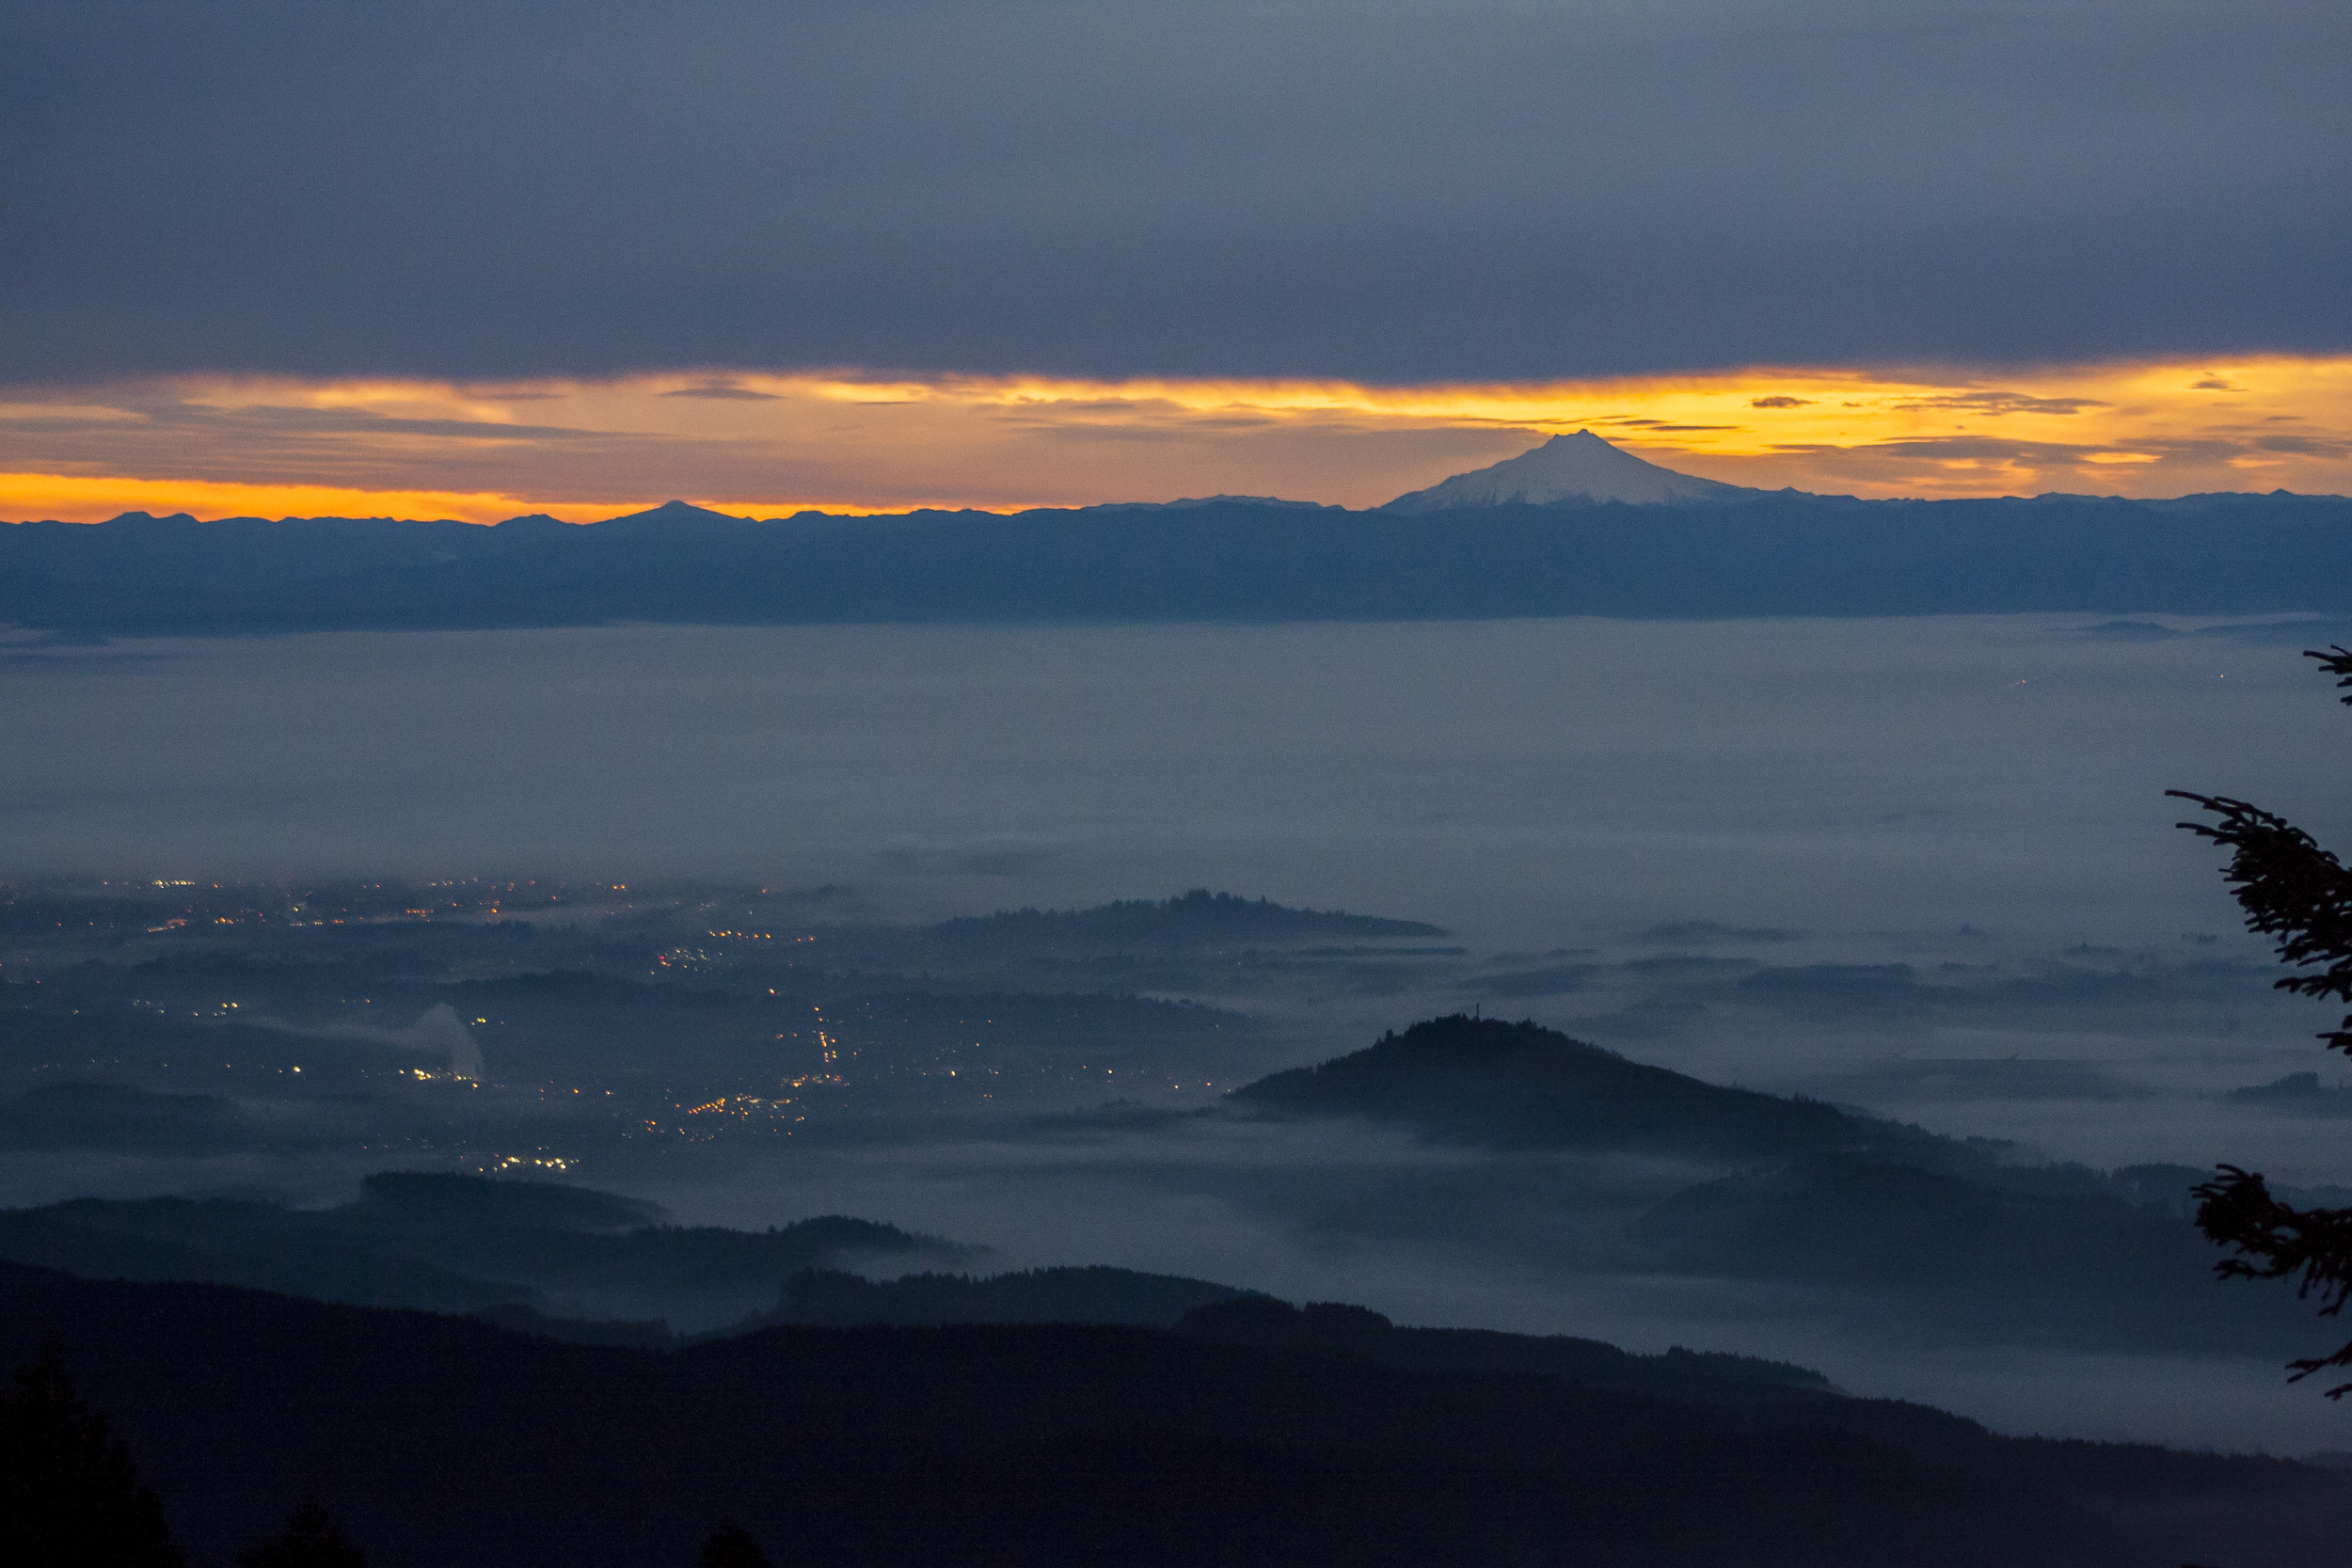 Sunrise from Mary's Peak, Mt Jefferson in the distance, Oregon.